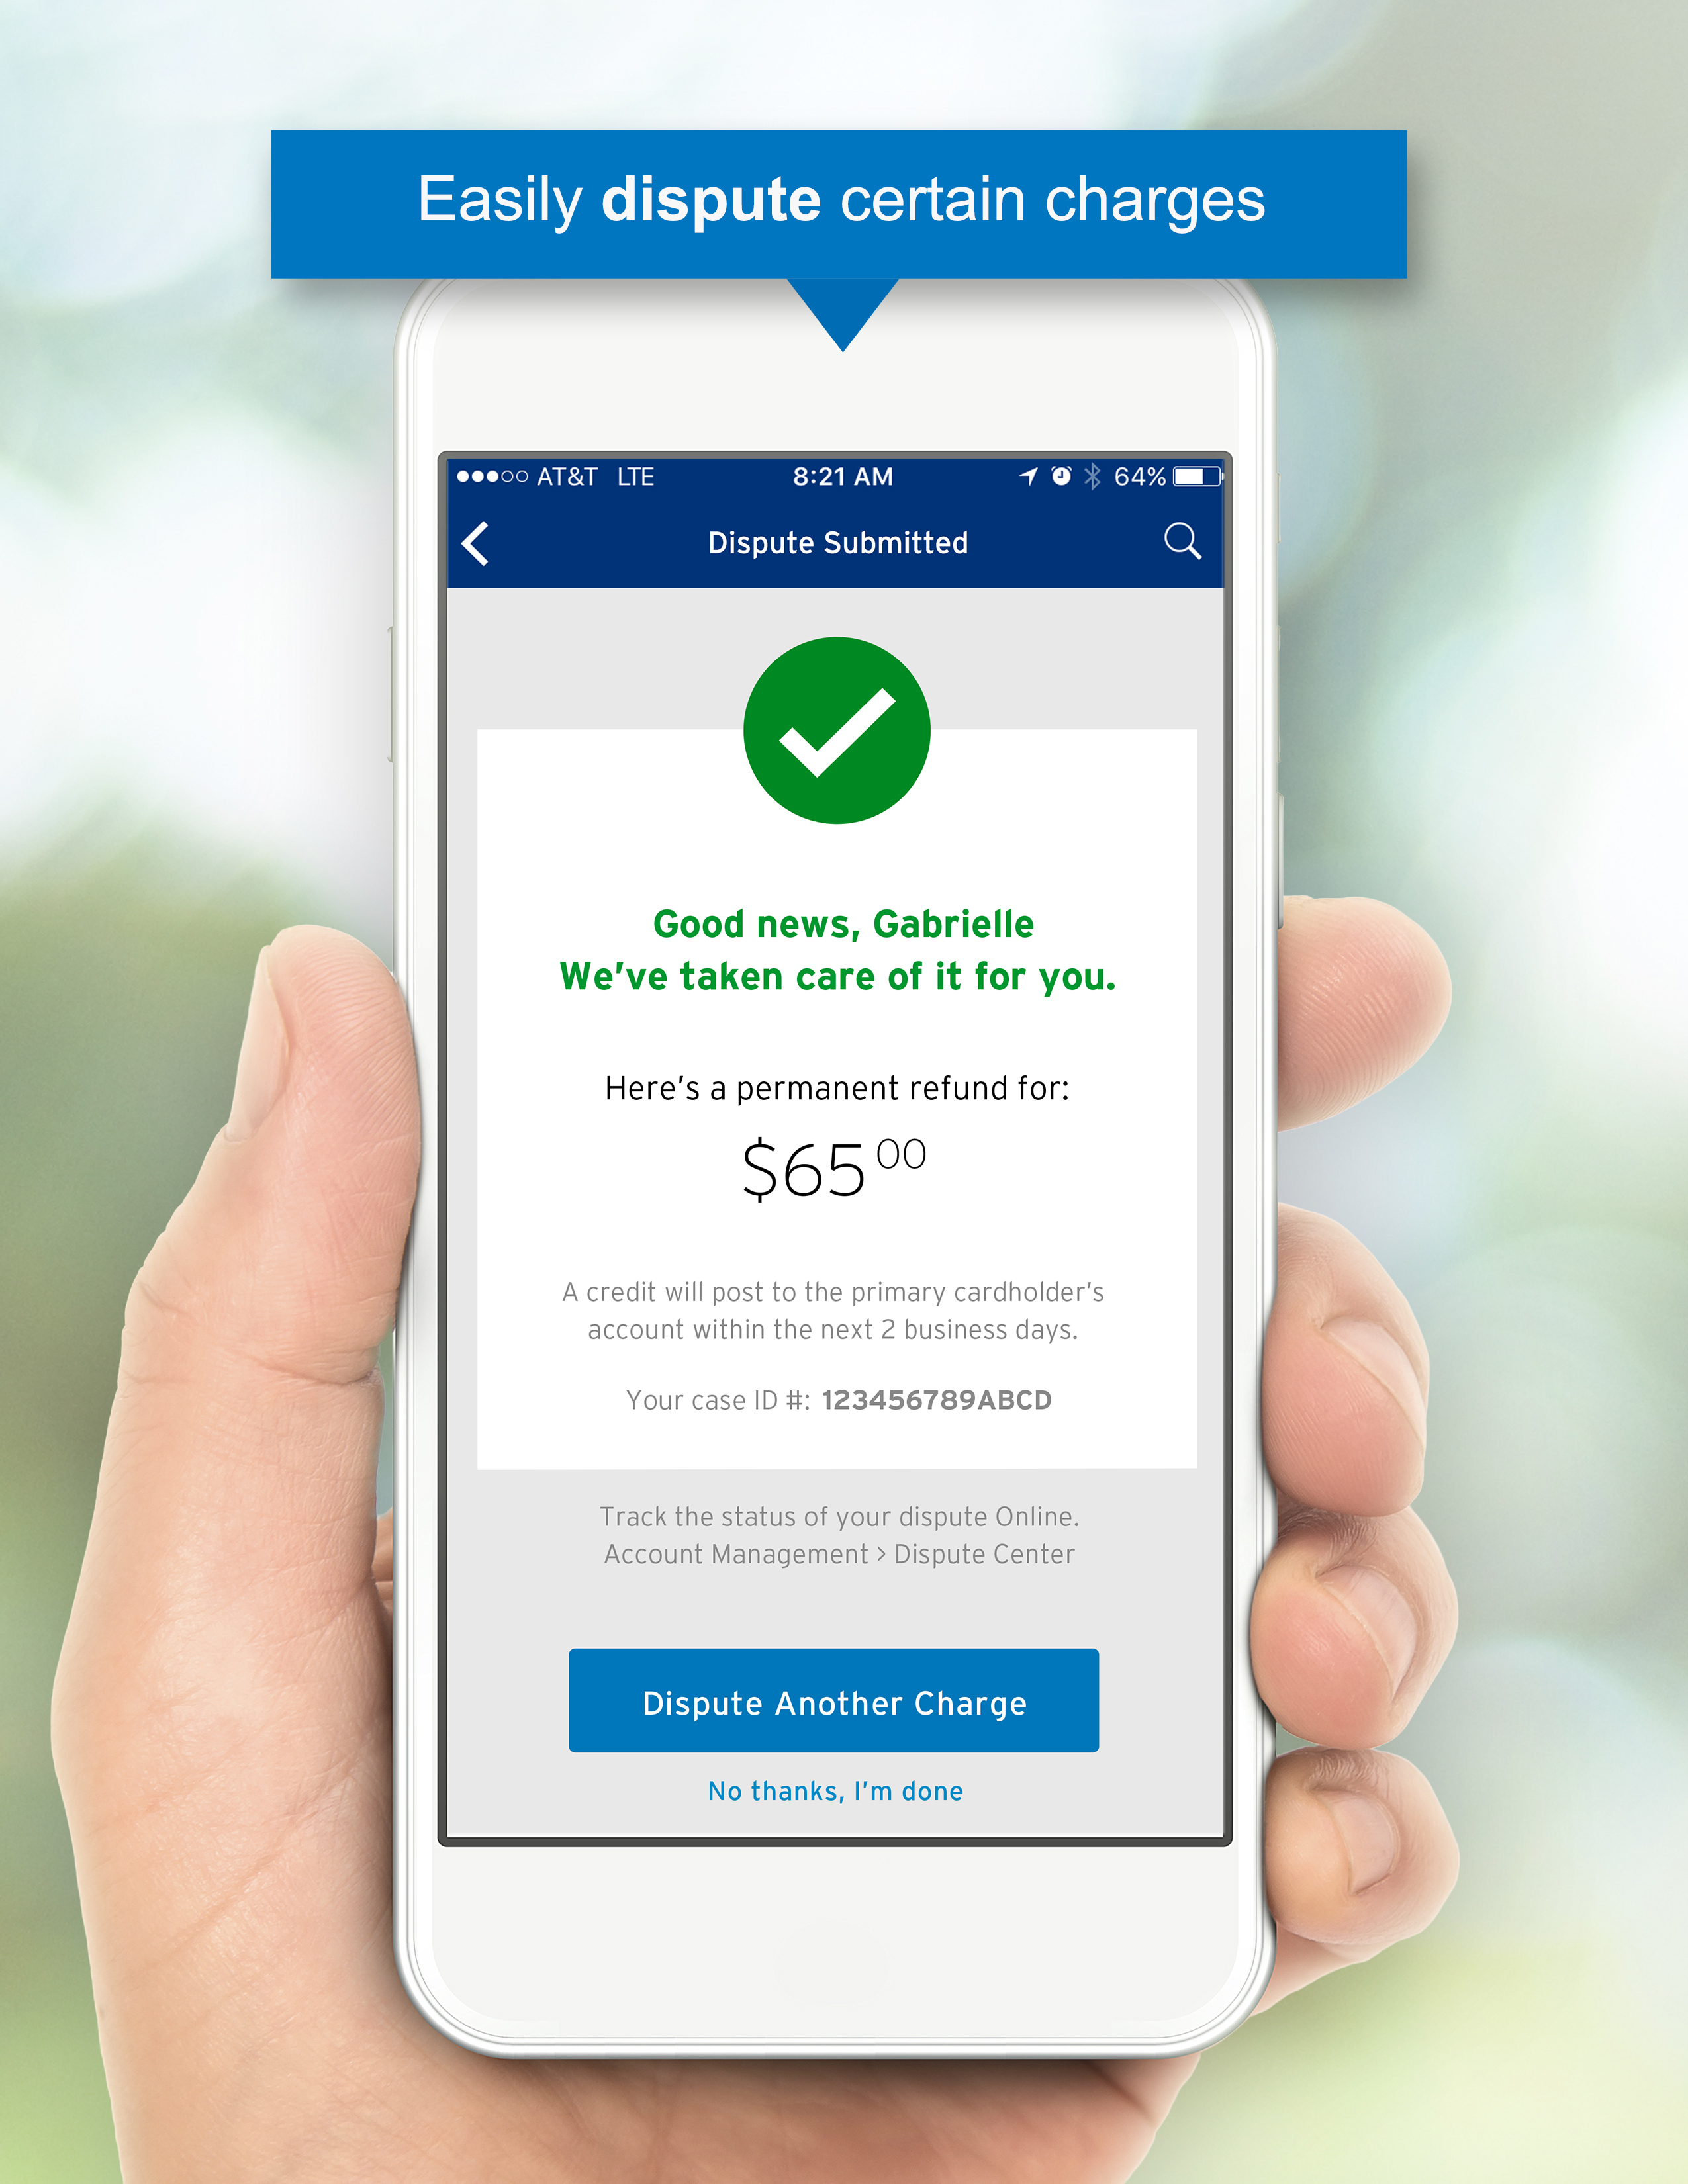 Citi Launches Ability to Dispute a Charge Within Mobile App ...